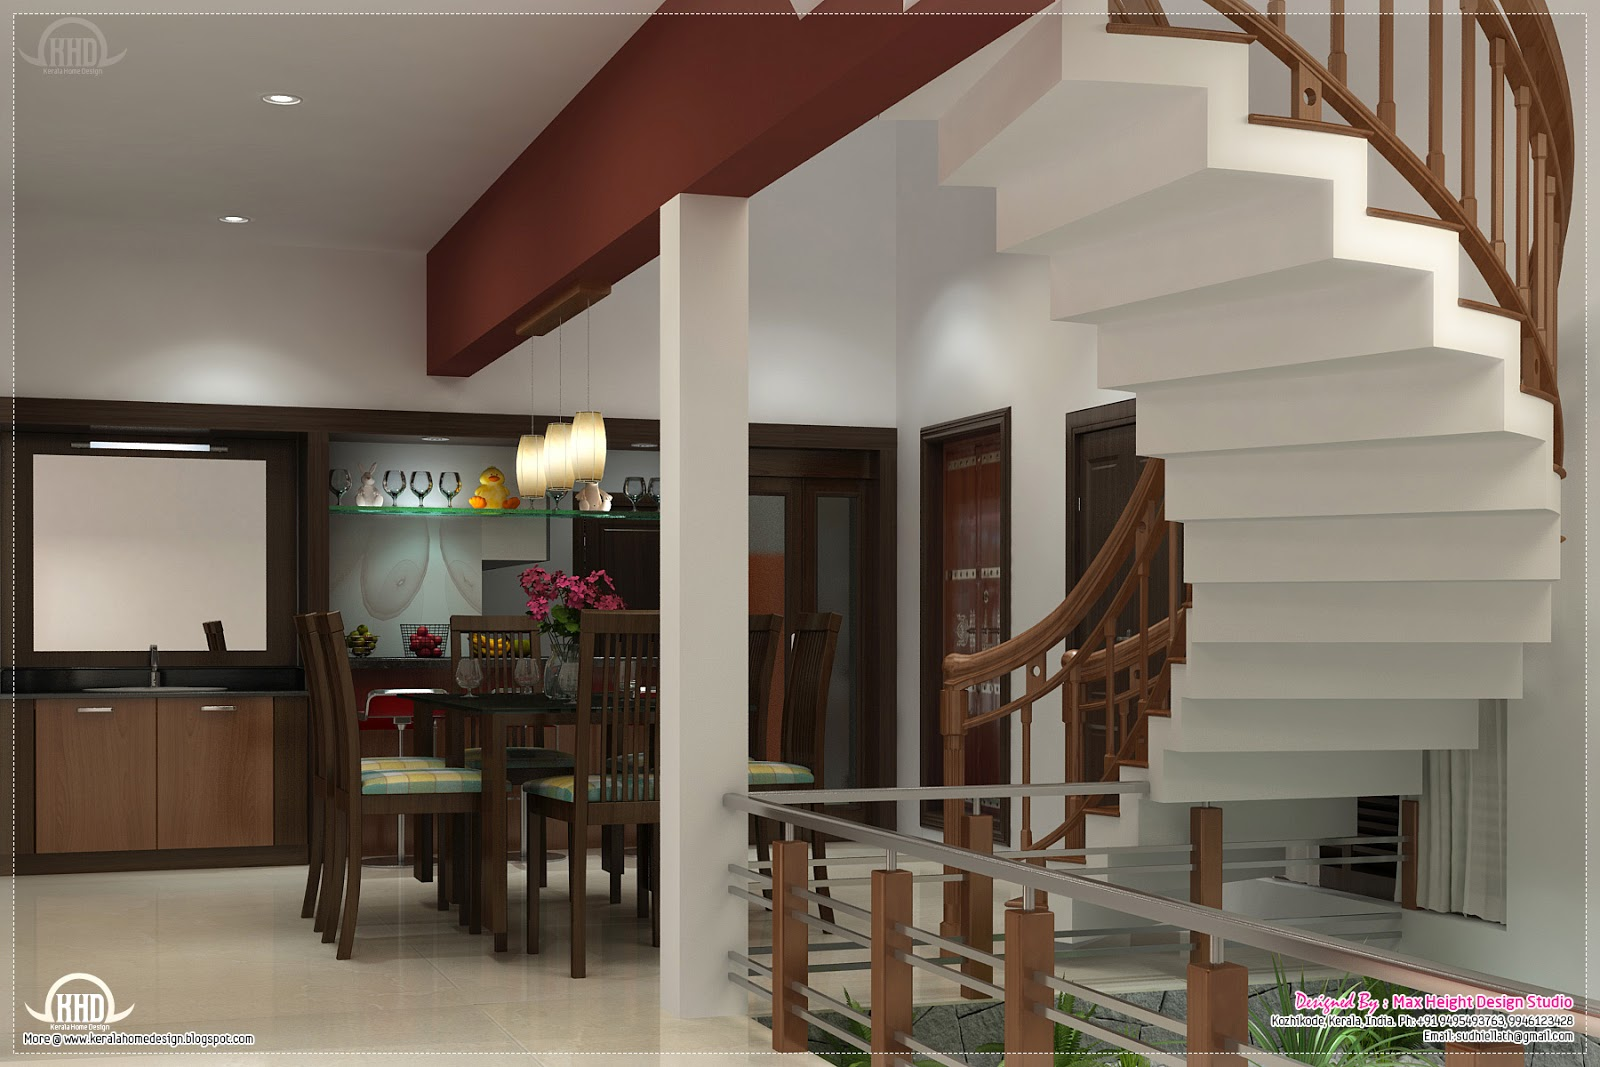 Home interior design ideas kerala home design and floor plans - Interior design home ...